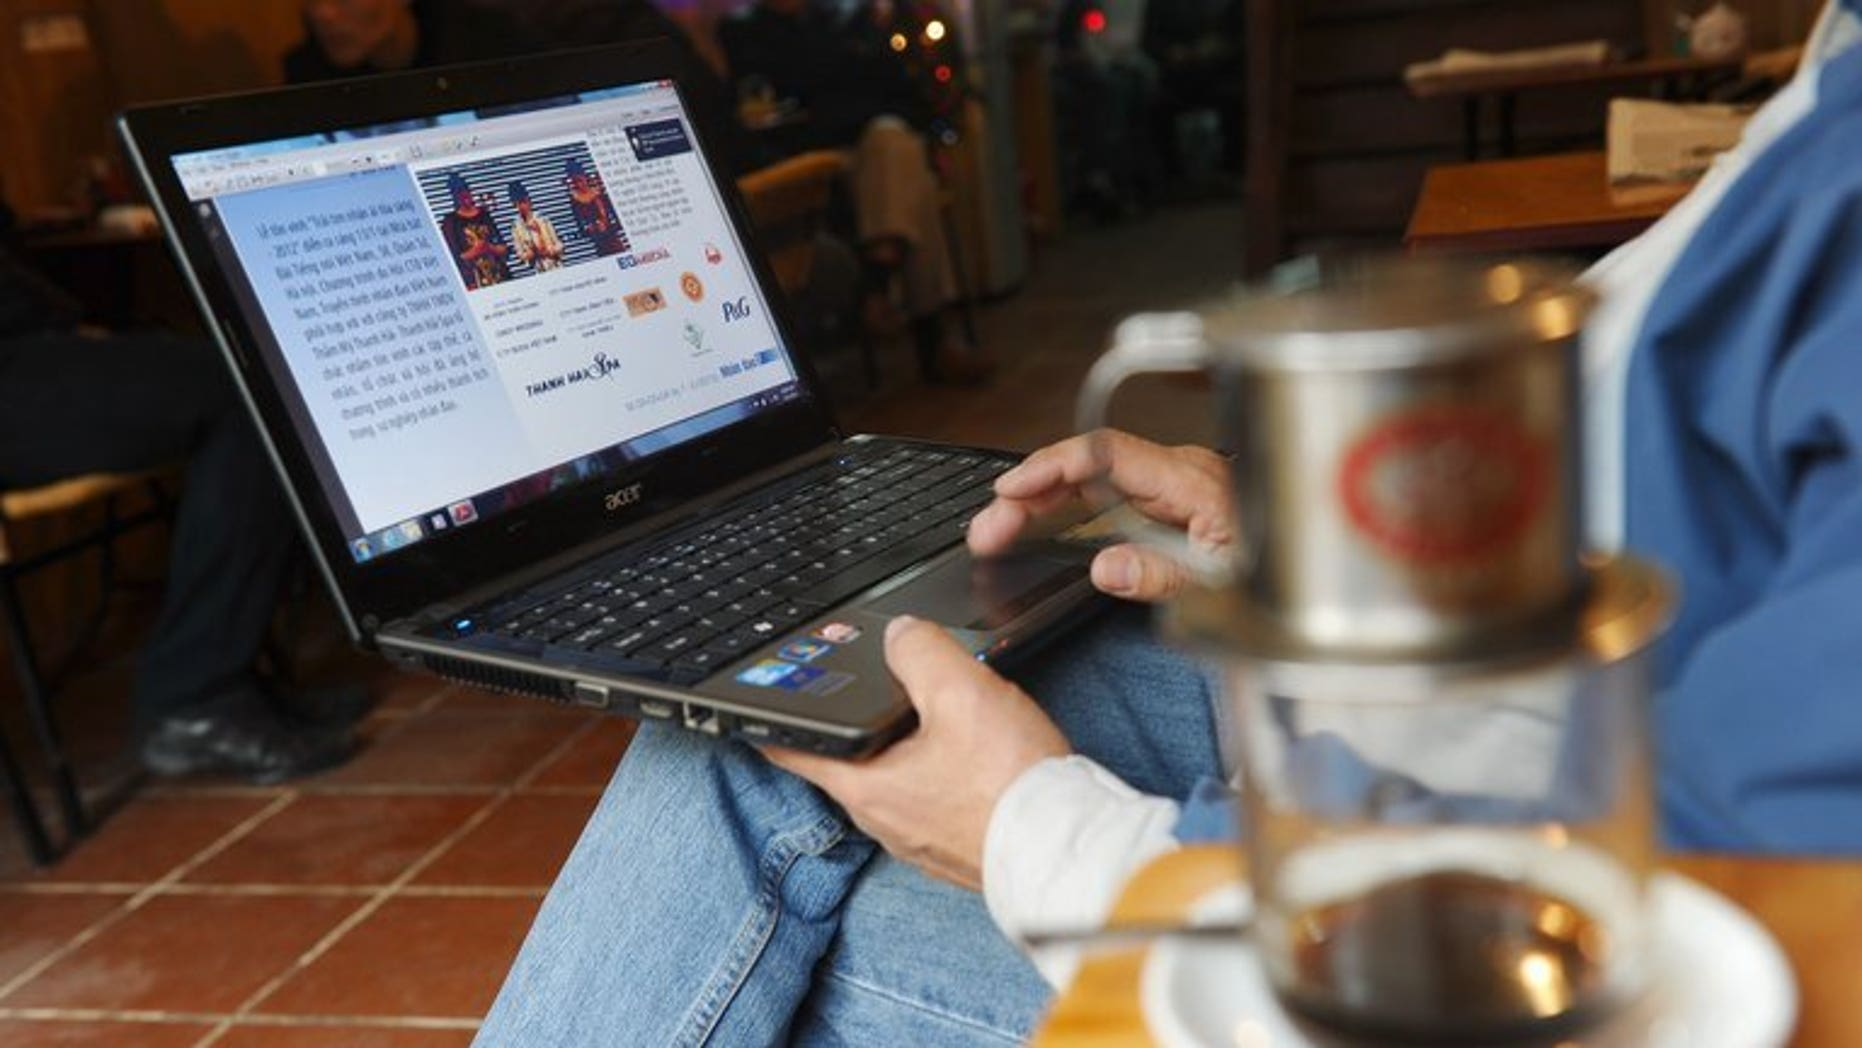 A man reads online news with his laptop at a coffee shop in downtown Hanoi on January 15, 2013. Communist Vietnam is to ban bloggers and social media users from sharing news stories online, under a new decree seen as a further crackdown on online freedom.